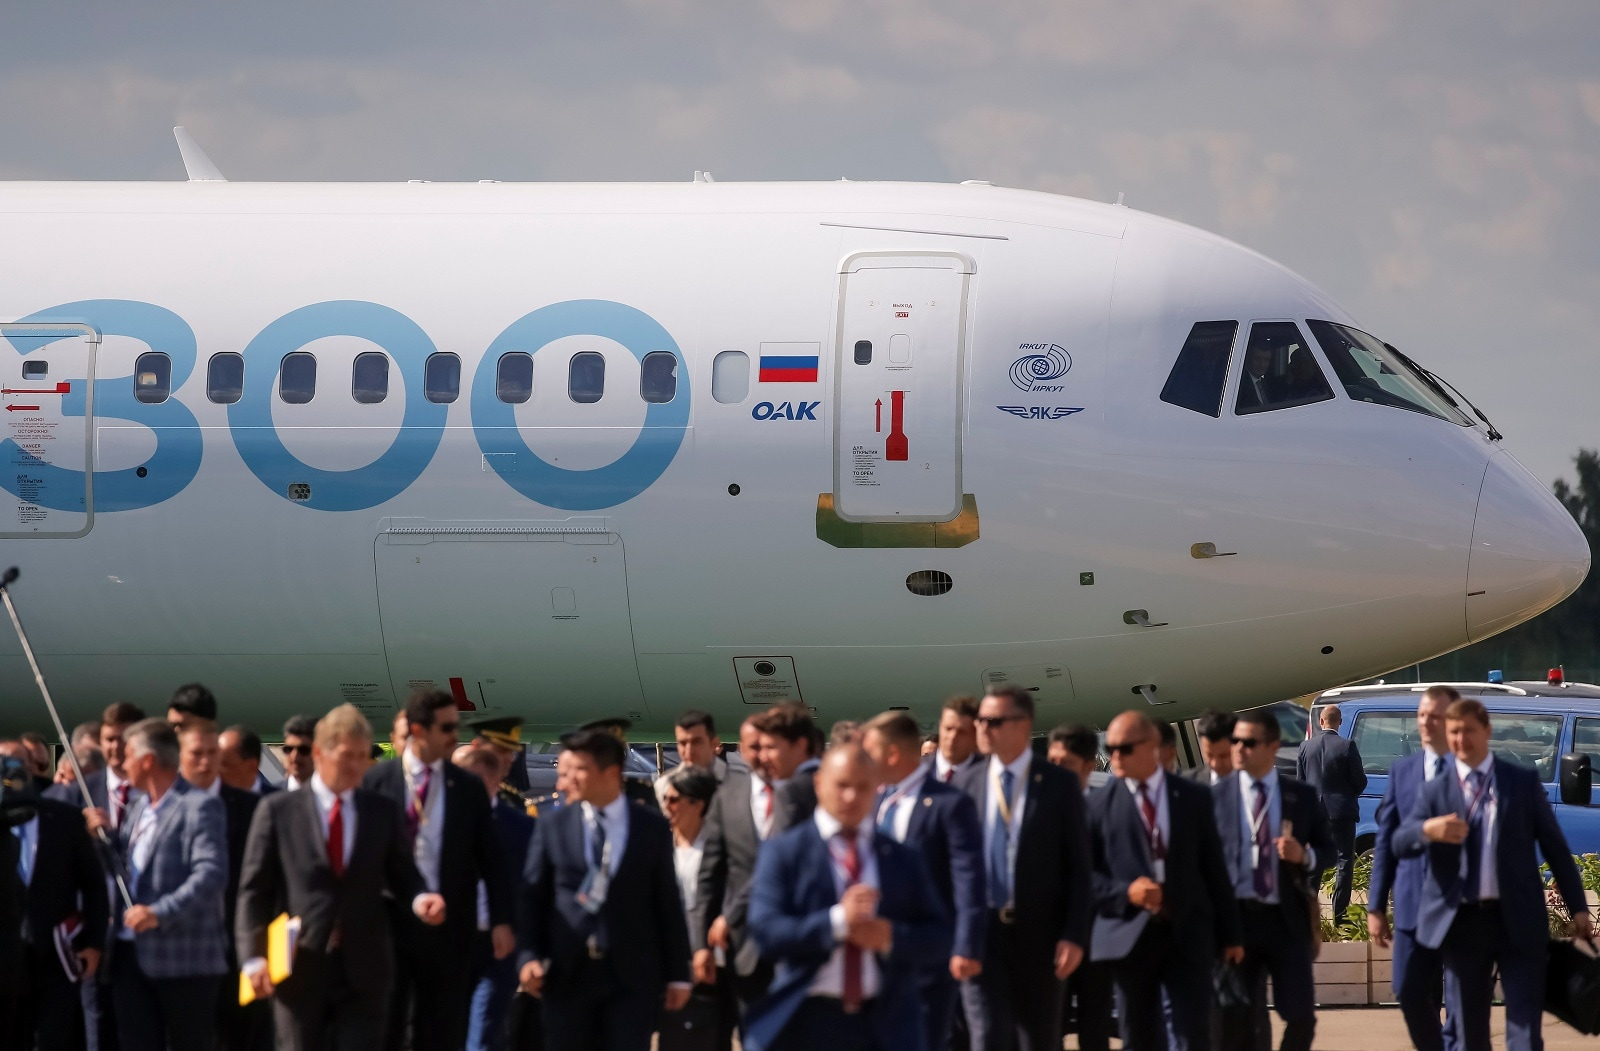 Though it was supposed to be put in service at the end of 2018, Rostec chief Sergei Chemezov said this year the first MC-21 planes will be delivered to Russian state-owned Aeroflot airline only in 2021. (Image: Reuters)